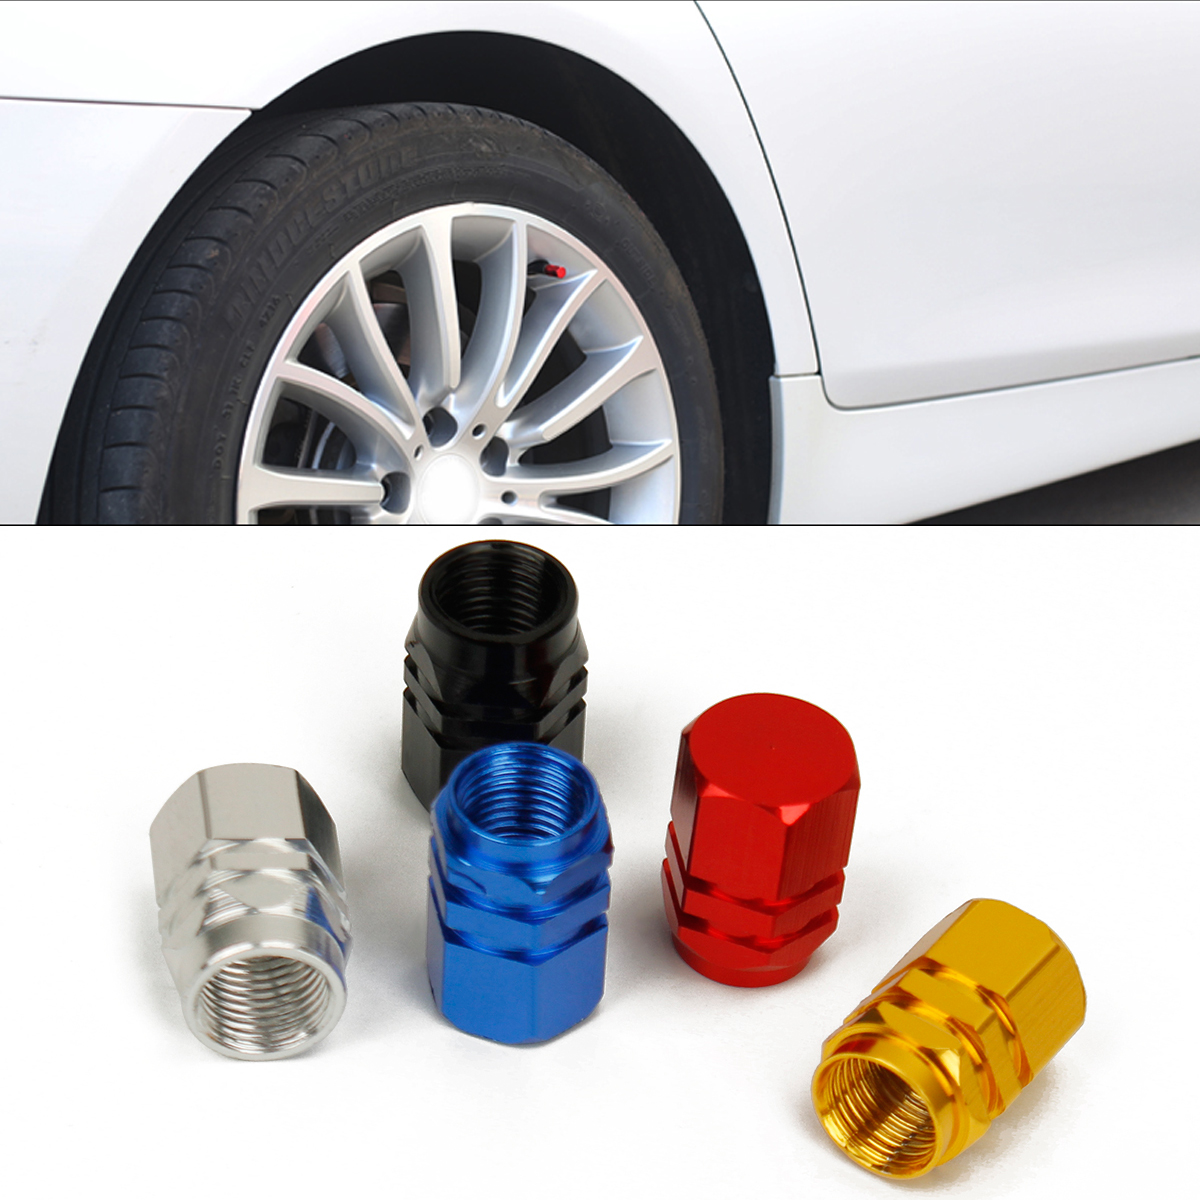 Universal 4pcs Aluminum Car Tyre Air Valve Caps Bike Bicycle Tire Valve Tyre Stem Cap Auto Wheel Styling Round Airtight Cover